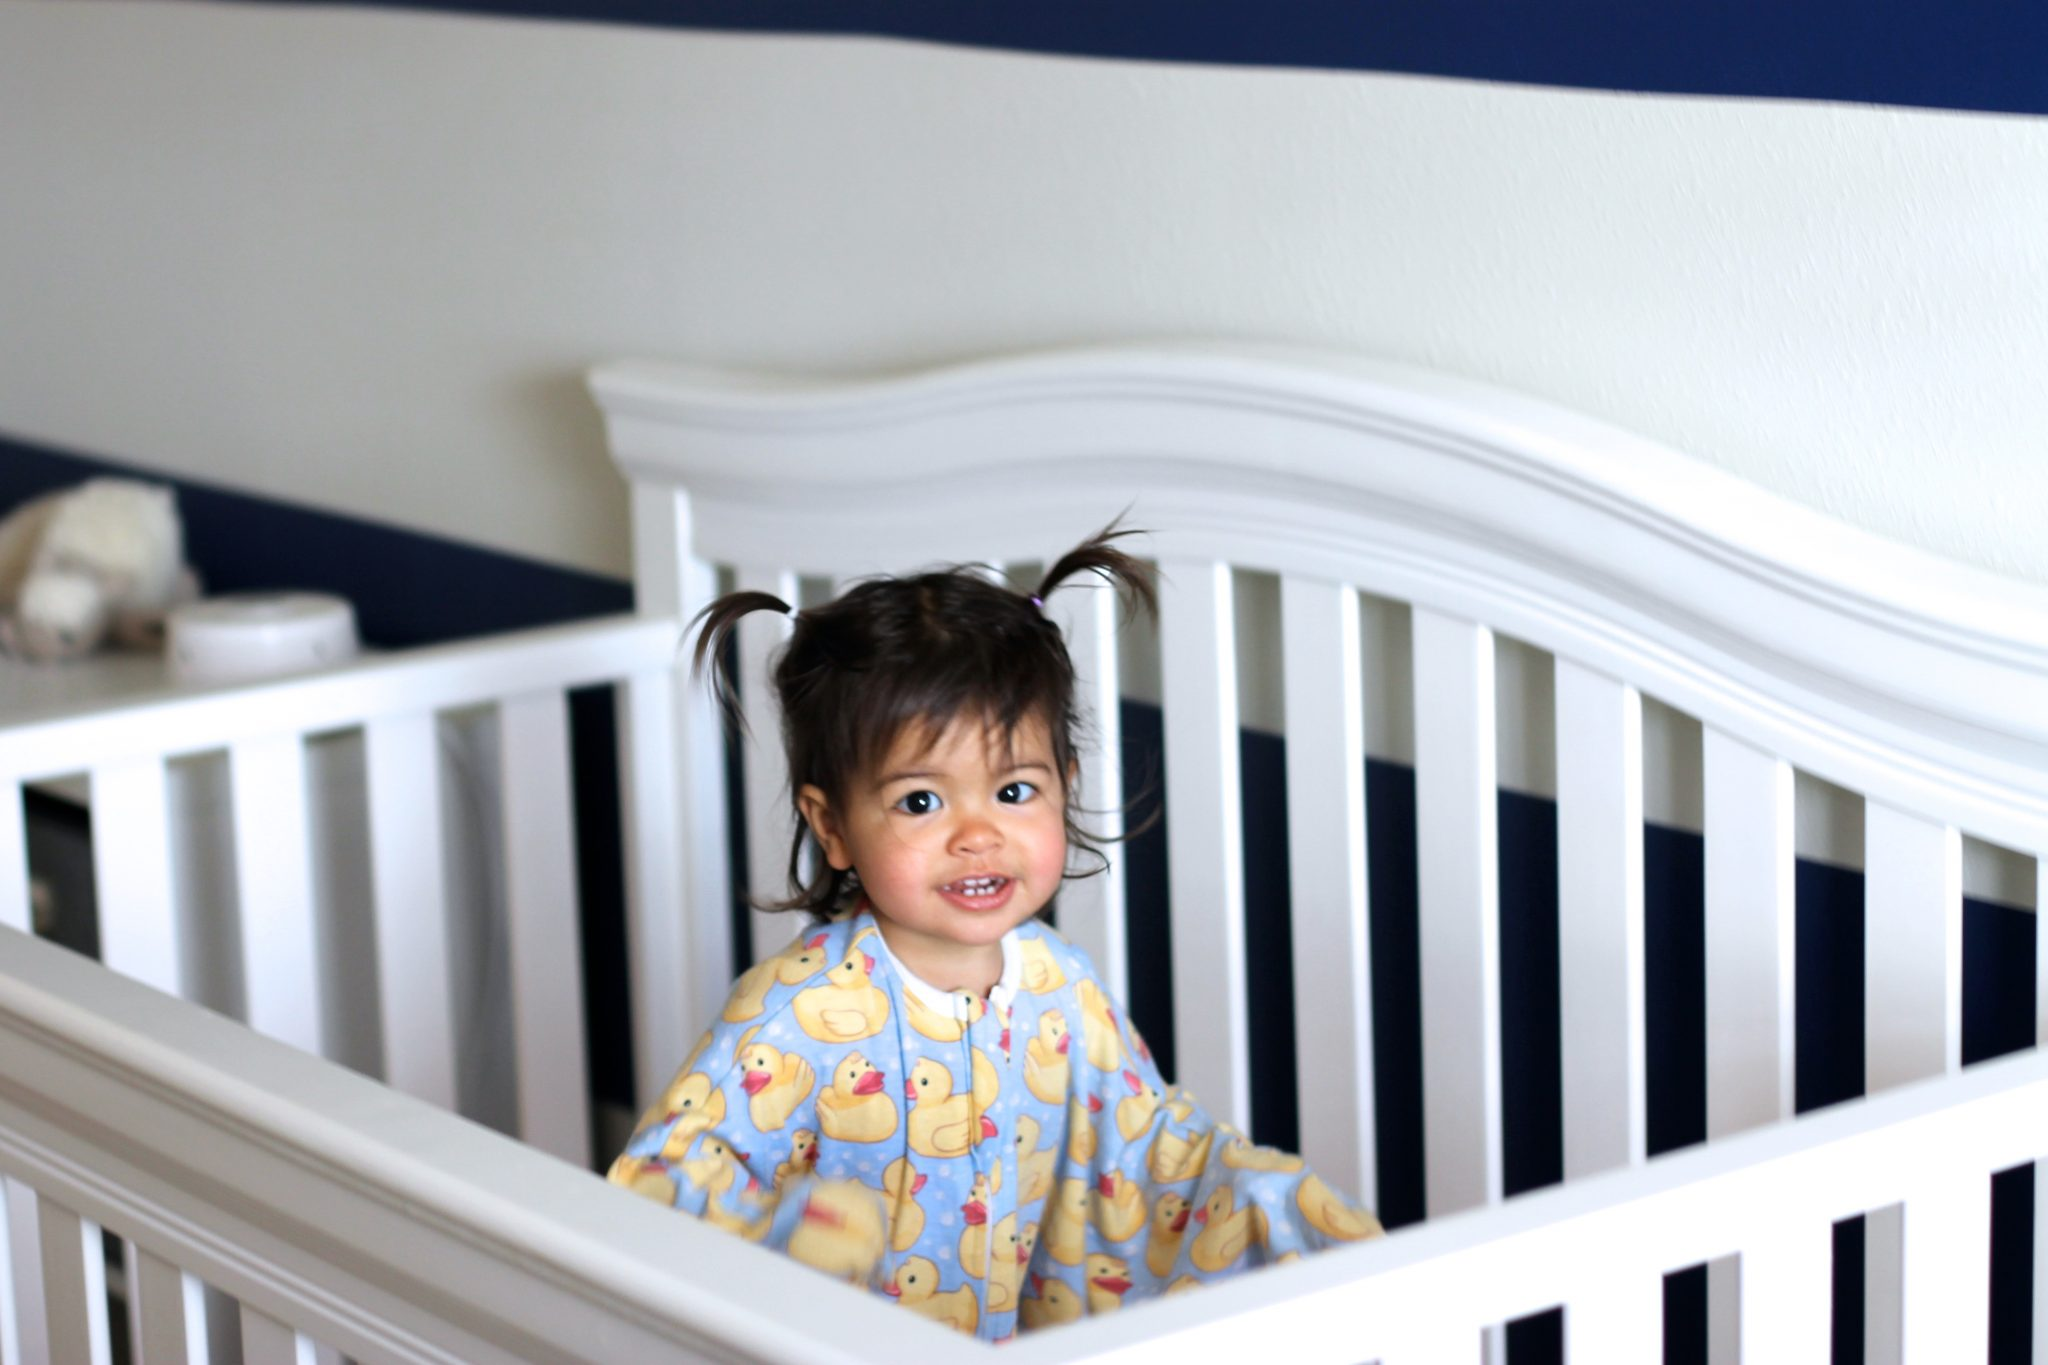 Playing in the Crib